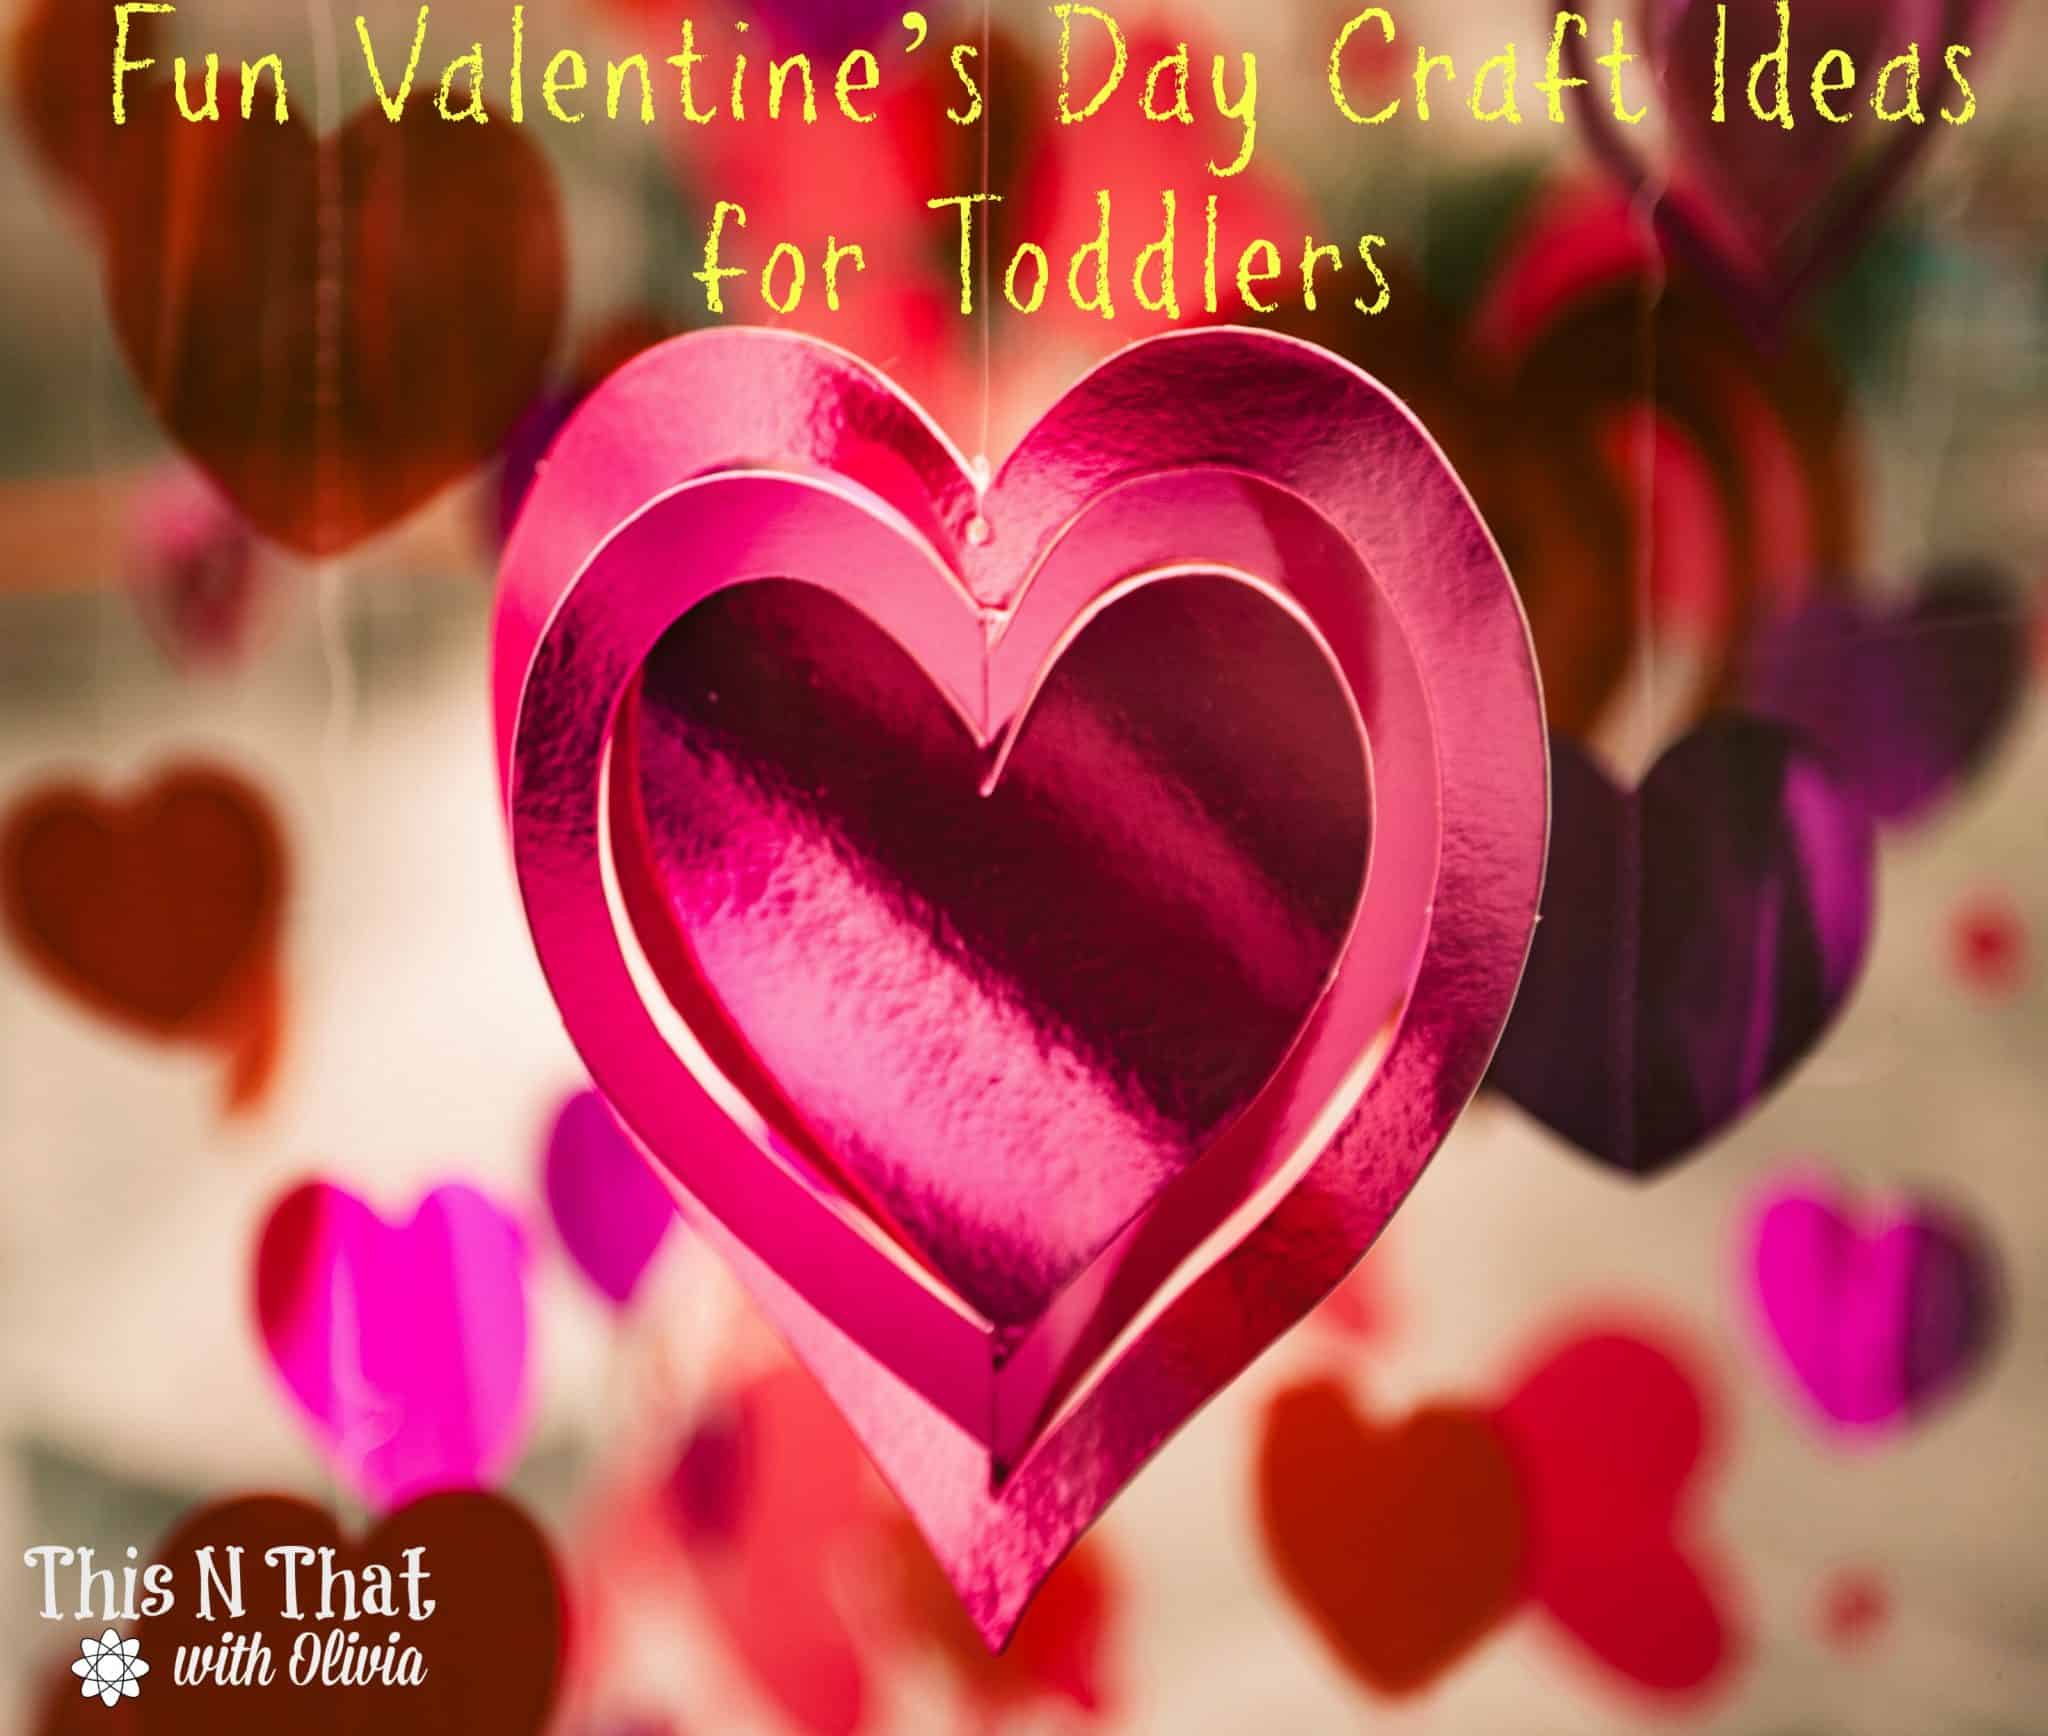 Fun Valentine's Day Craft Ideas for Toddlers